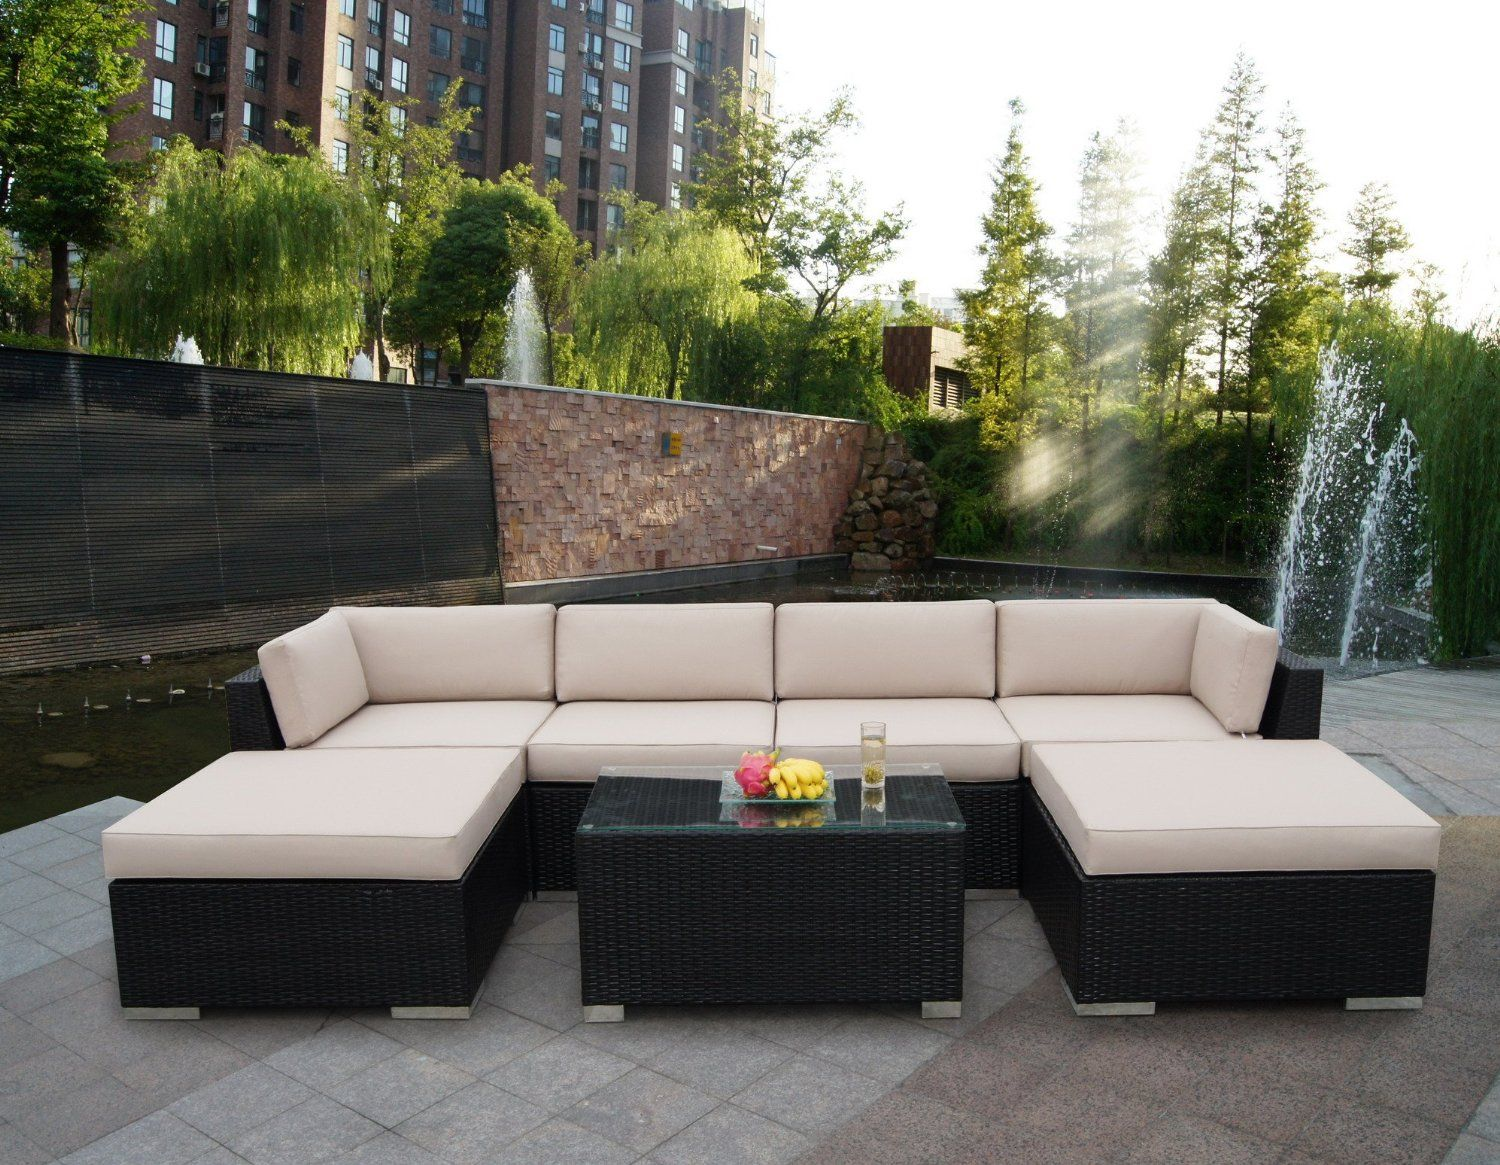 Outdoor wicker patio furniture plays a prominent role in decorating the  place. At present,